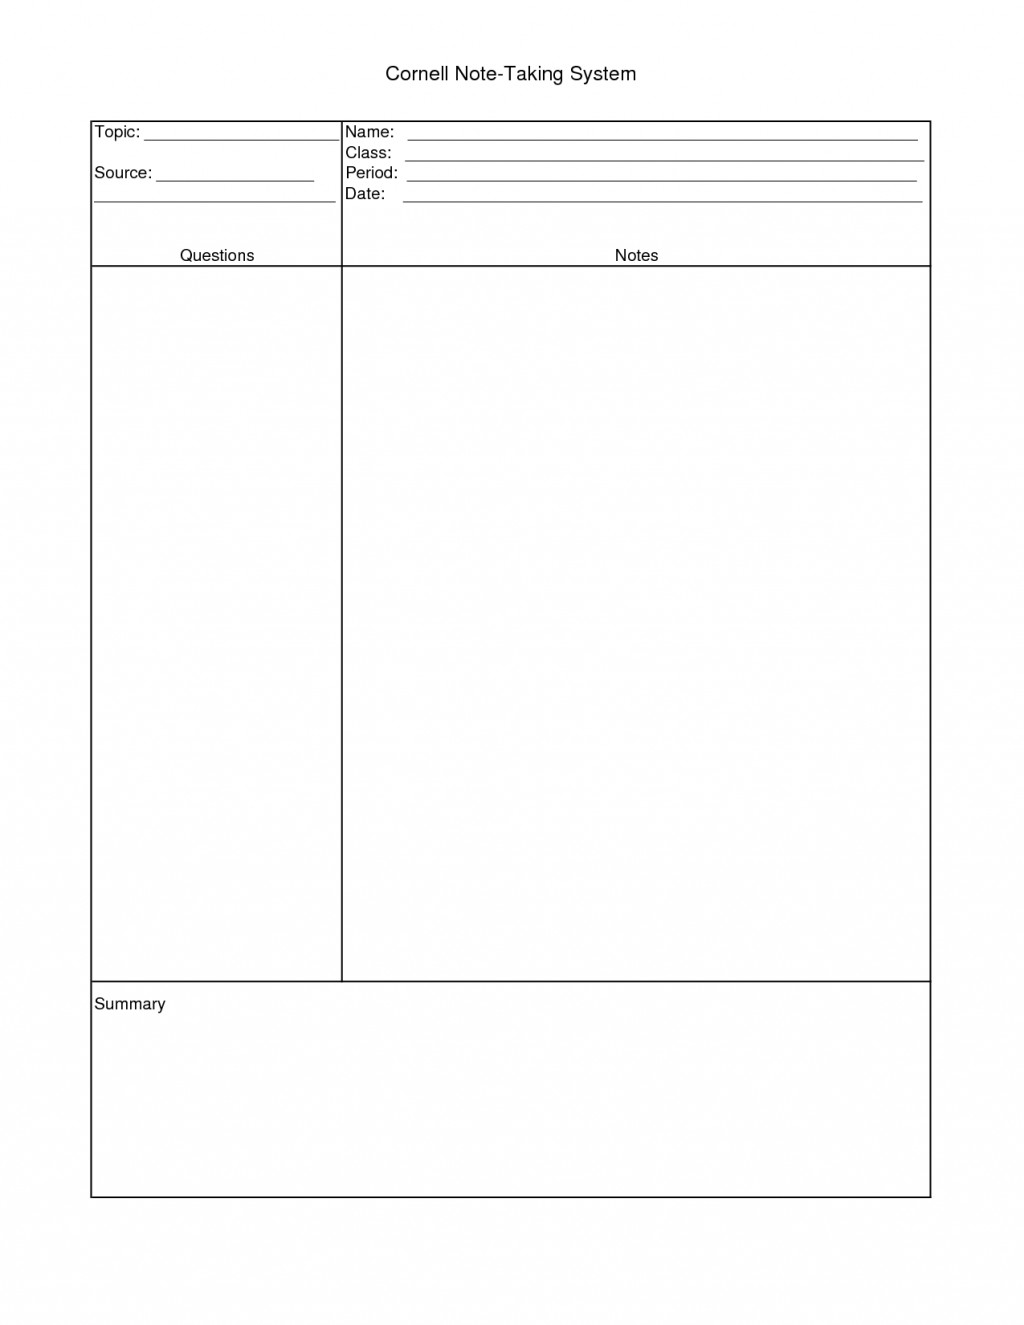 014 How To Do Notecards For Research Paper Mla Cornell Note Taking Template 31547 Staggering A Make Large